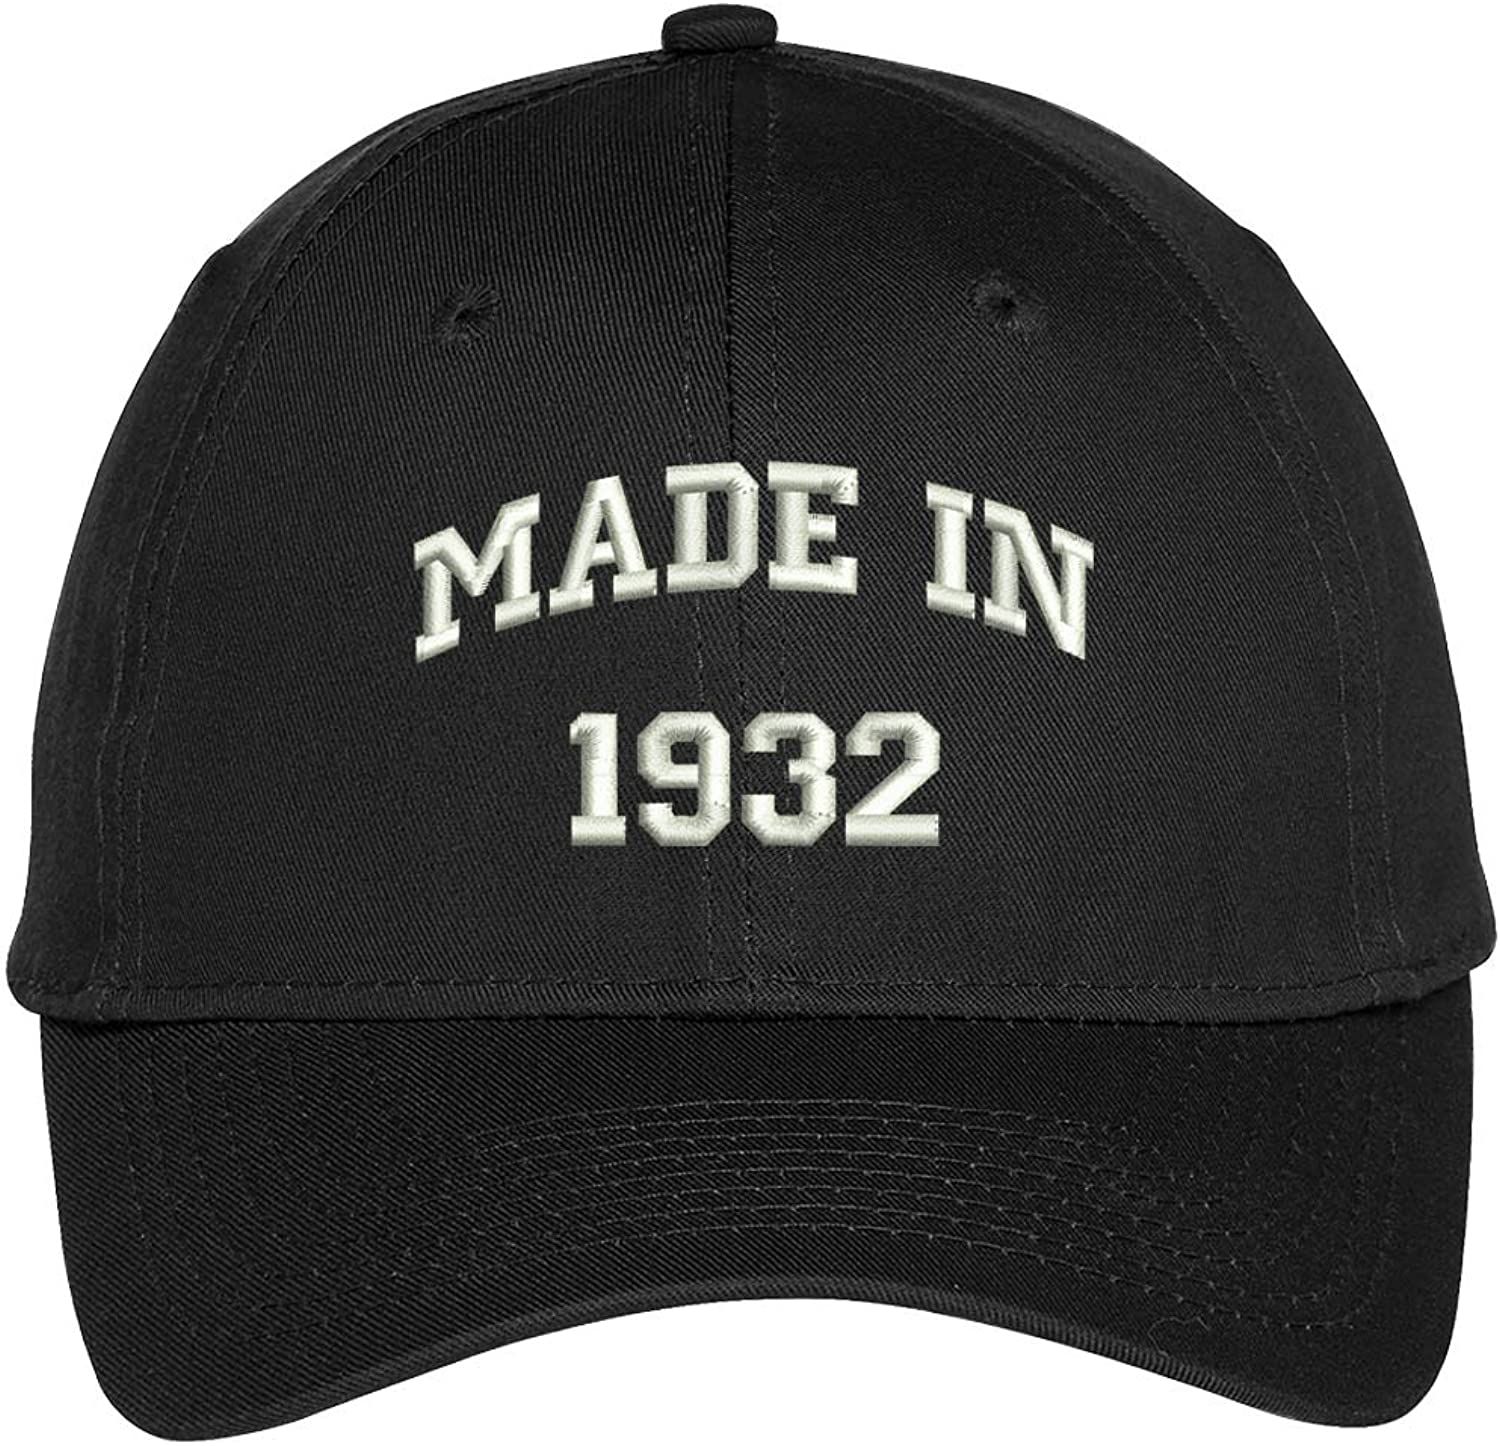 Trendy Apparel Shop Made in 193286th Birthday Embroidered High Profile Adjustable Baseball Cap